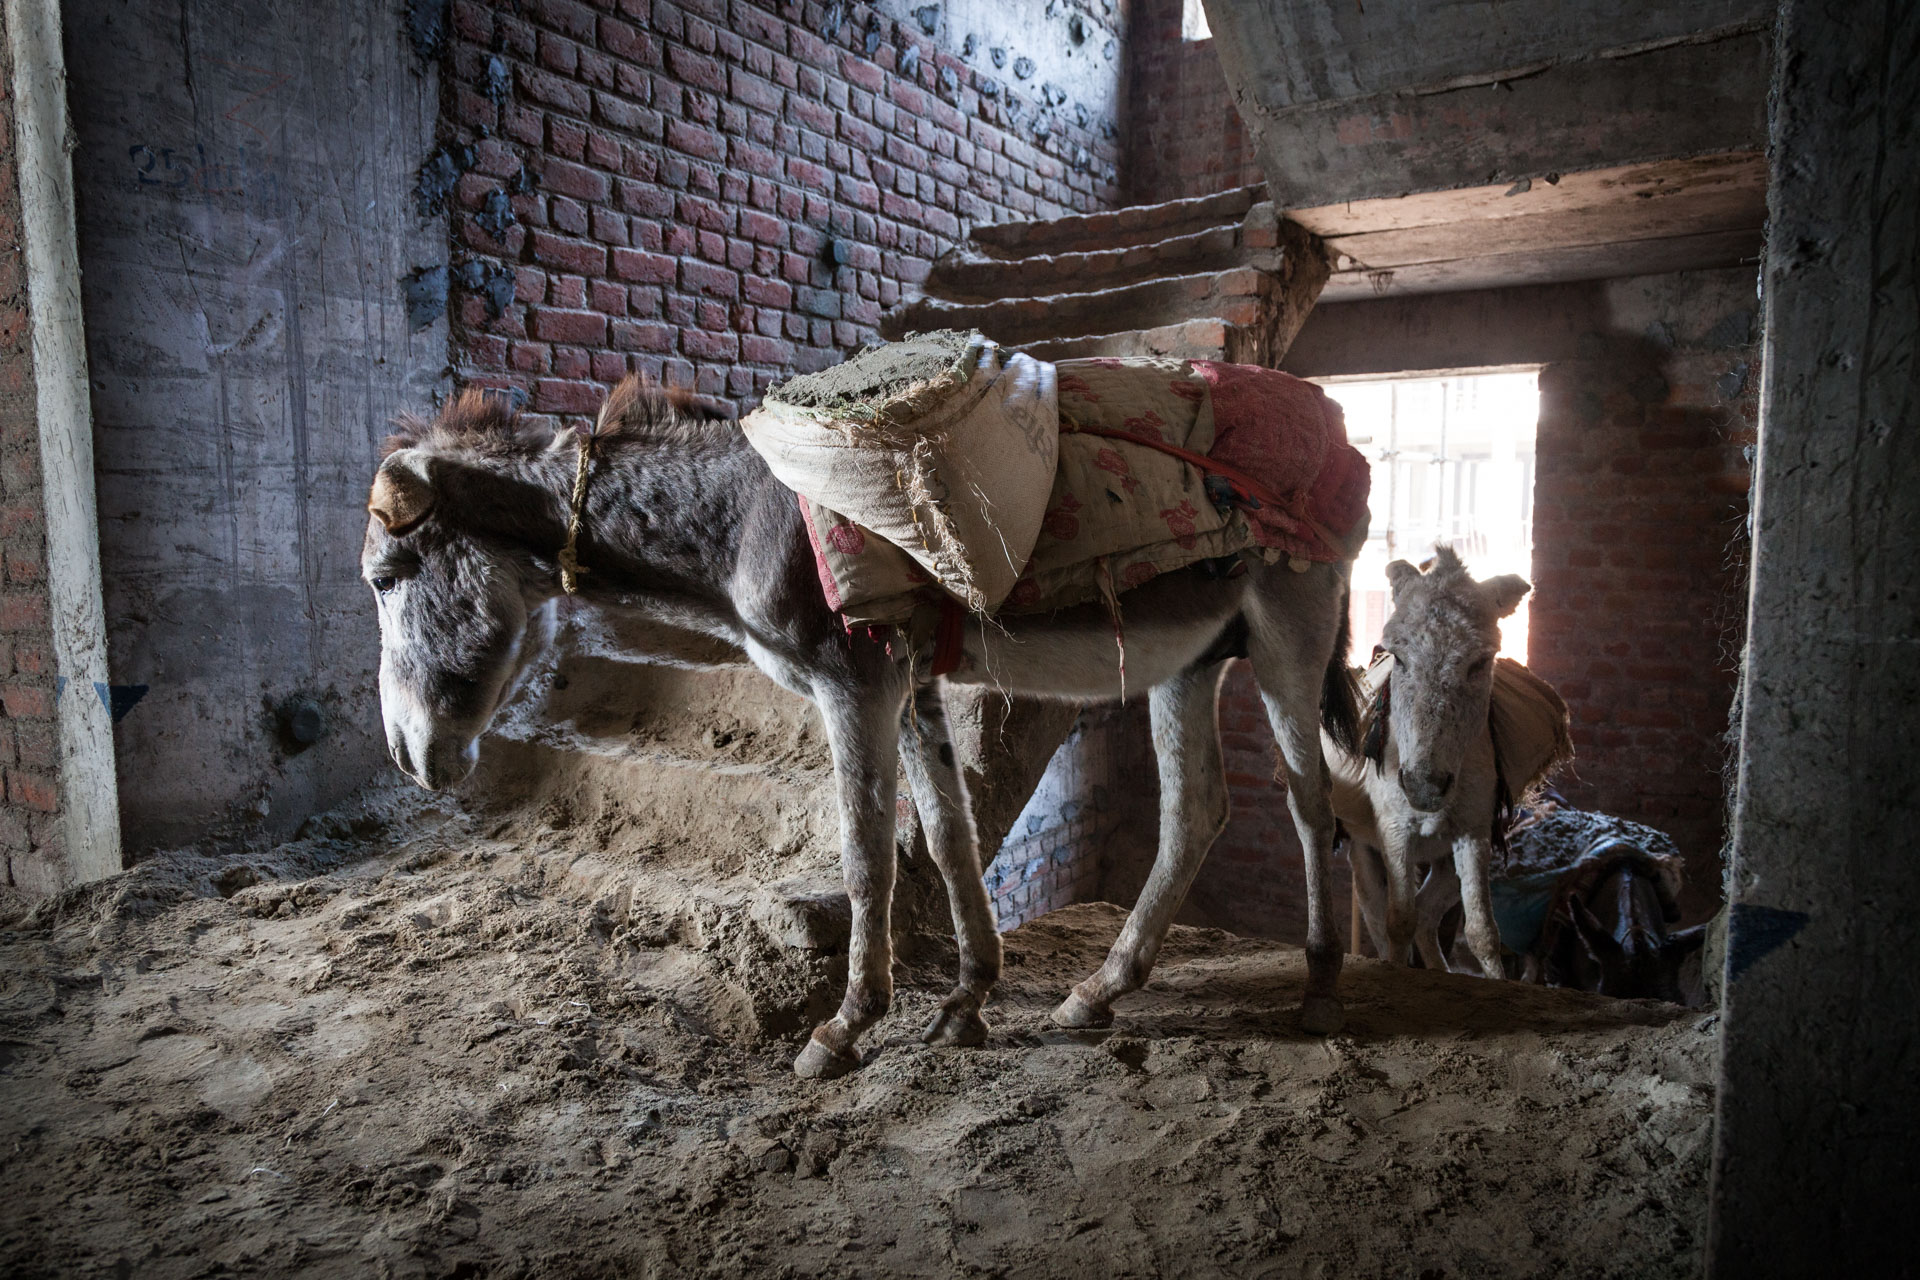 Donkeys building sites Delhi India